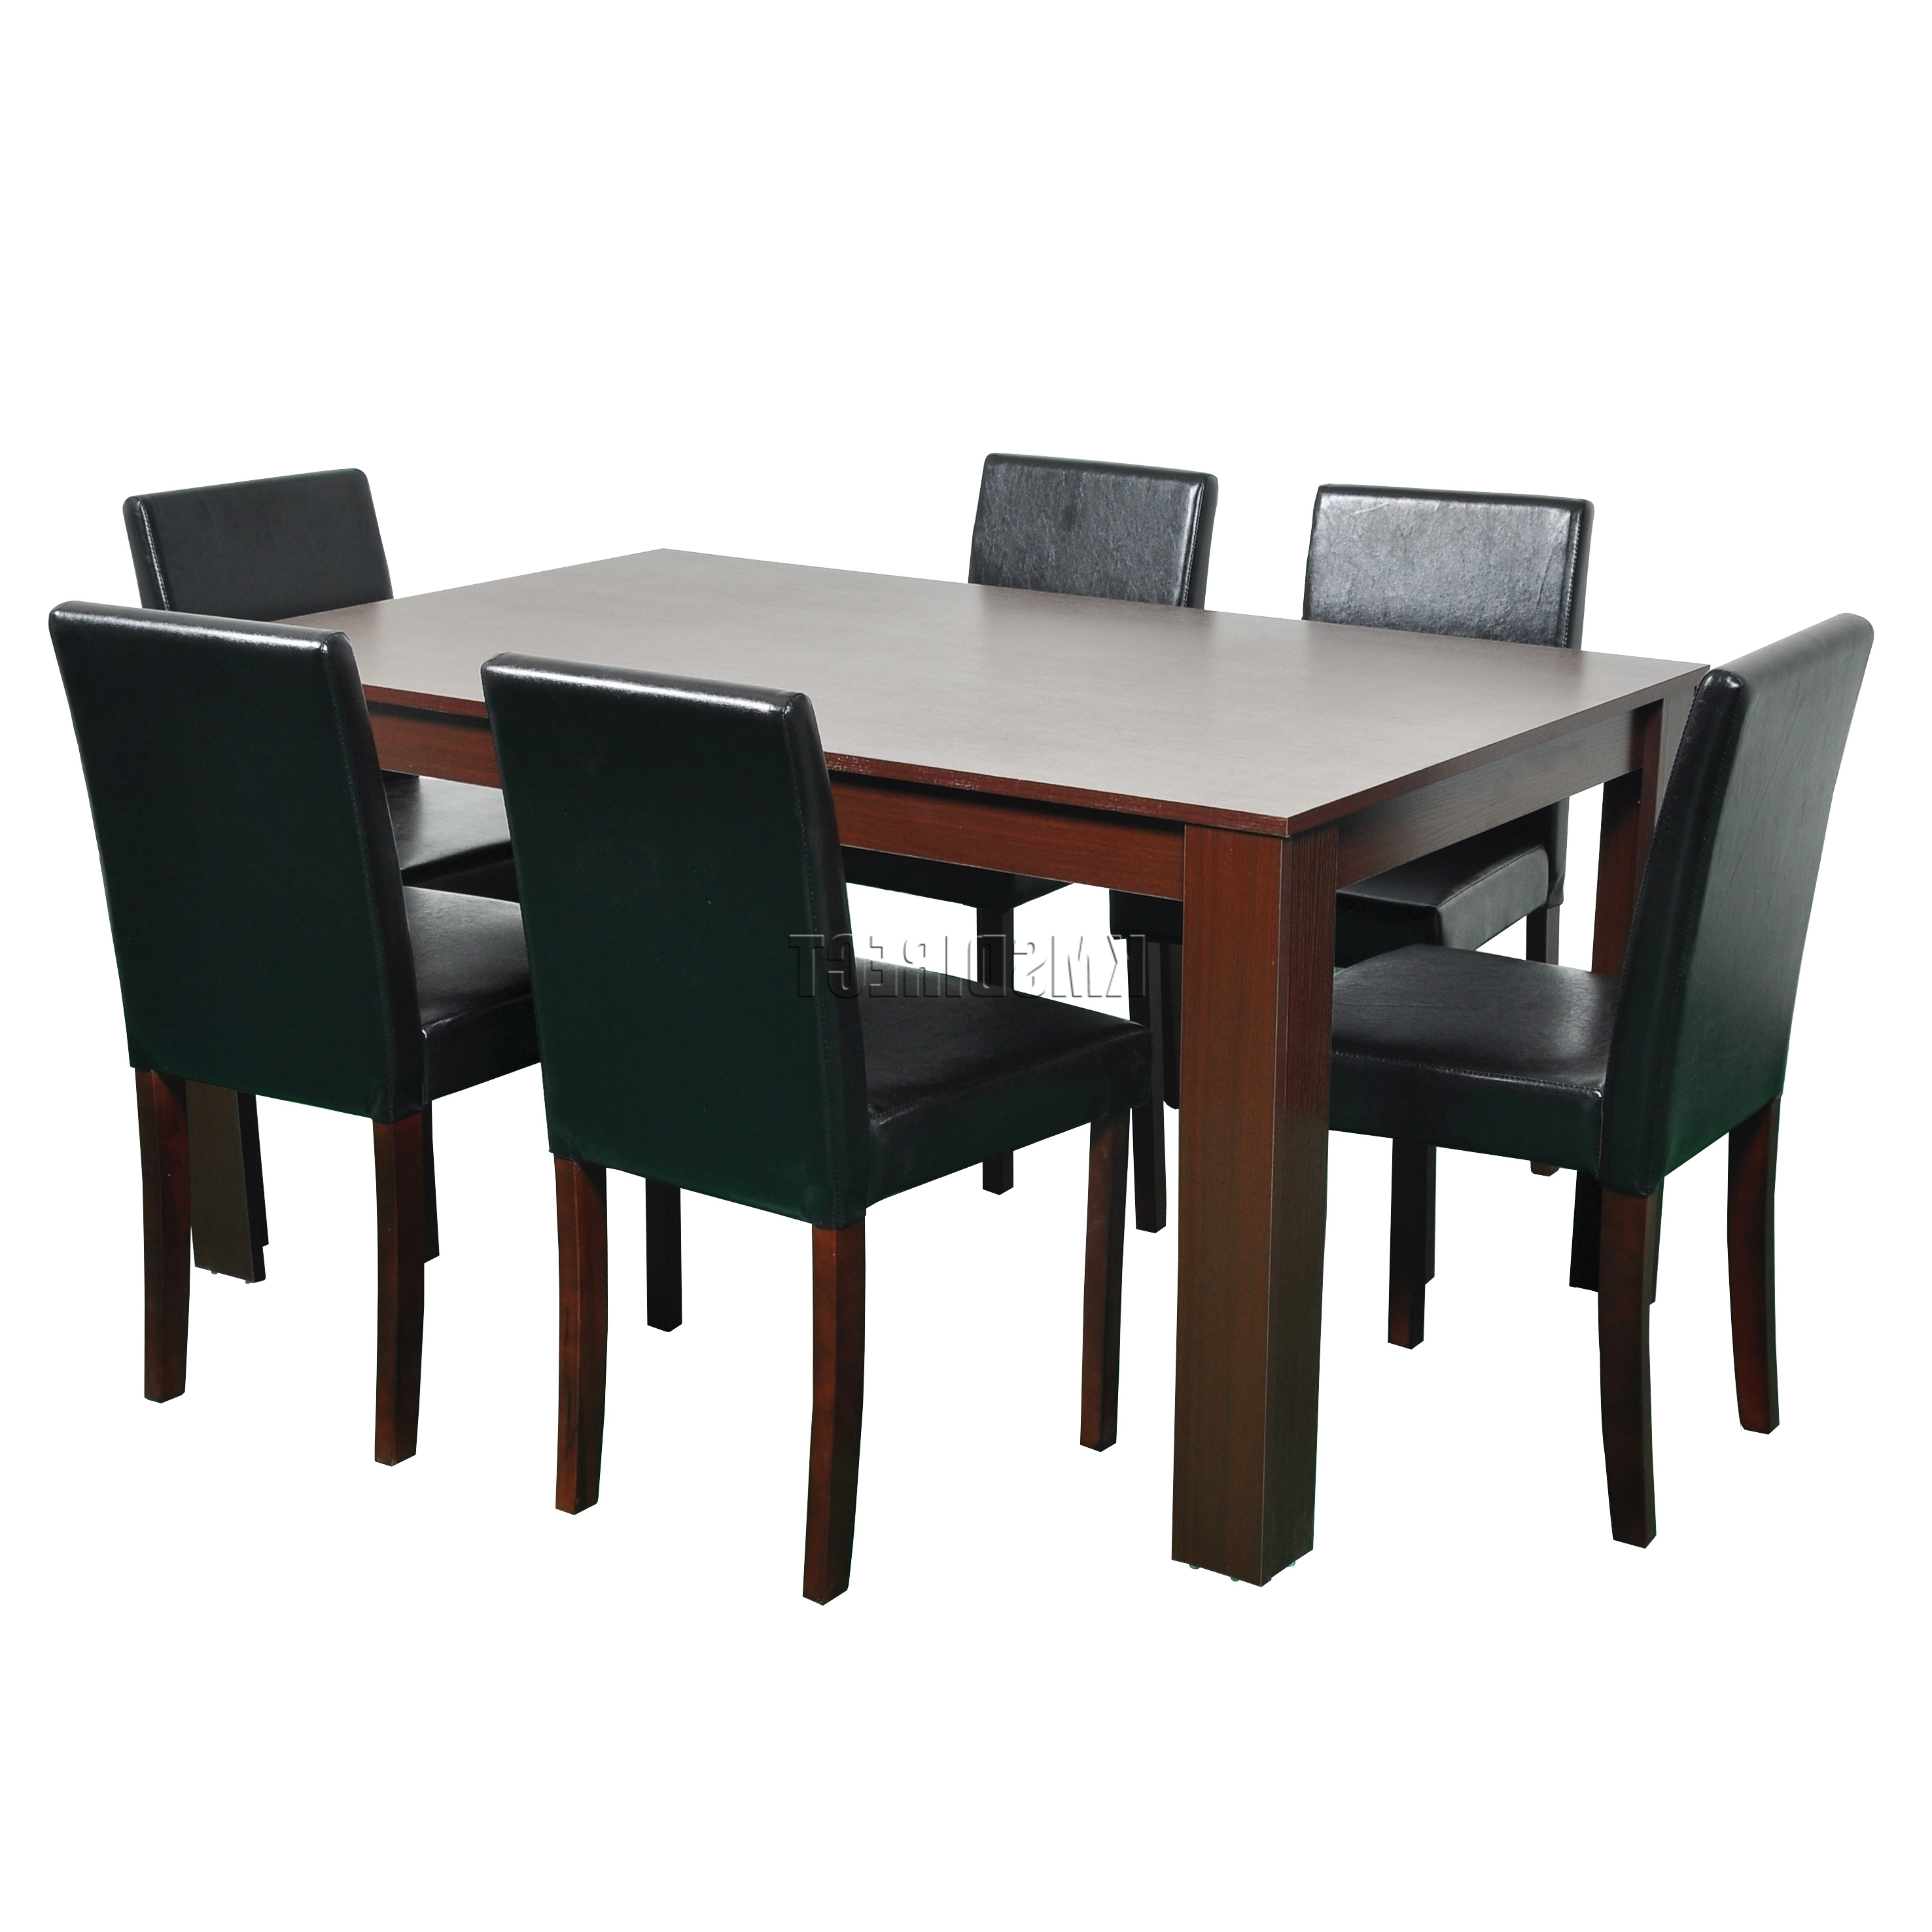 Cosmetic Damaged Wooden Dining Table 6 Faux Leather Chairs Set Throughout Current Walnut Dining Tables And 6 Chairs (View 5 of 25)